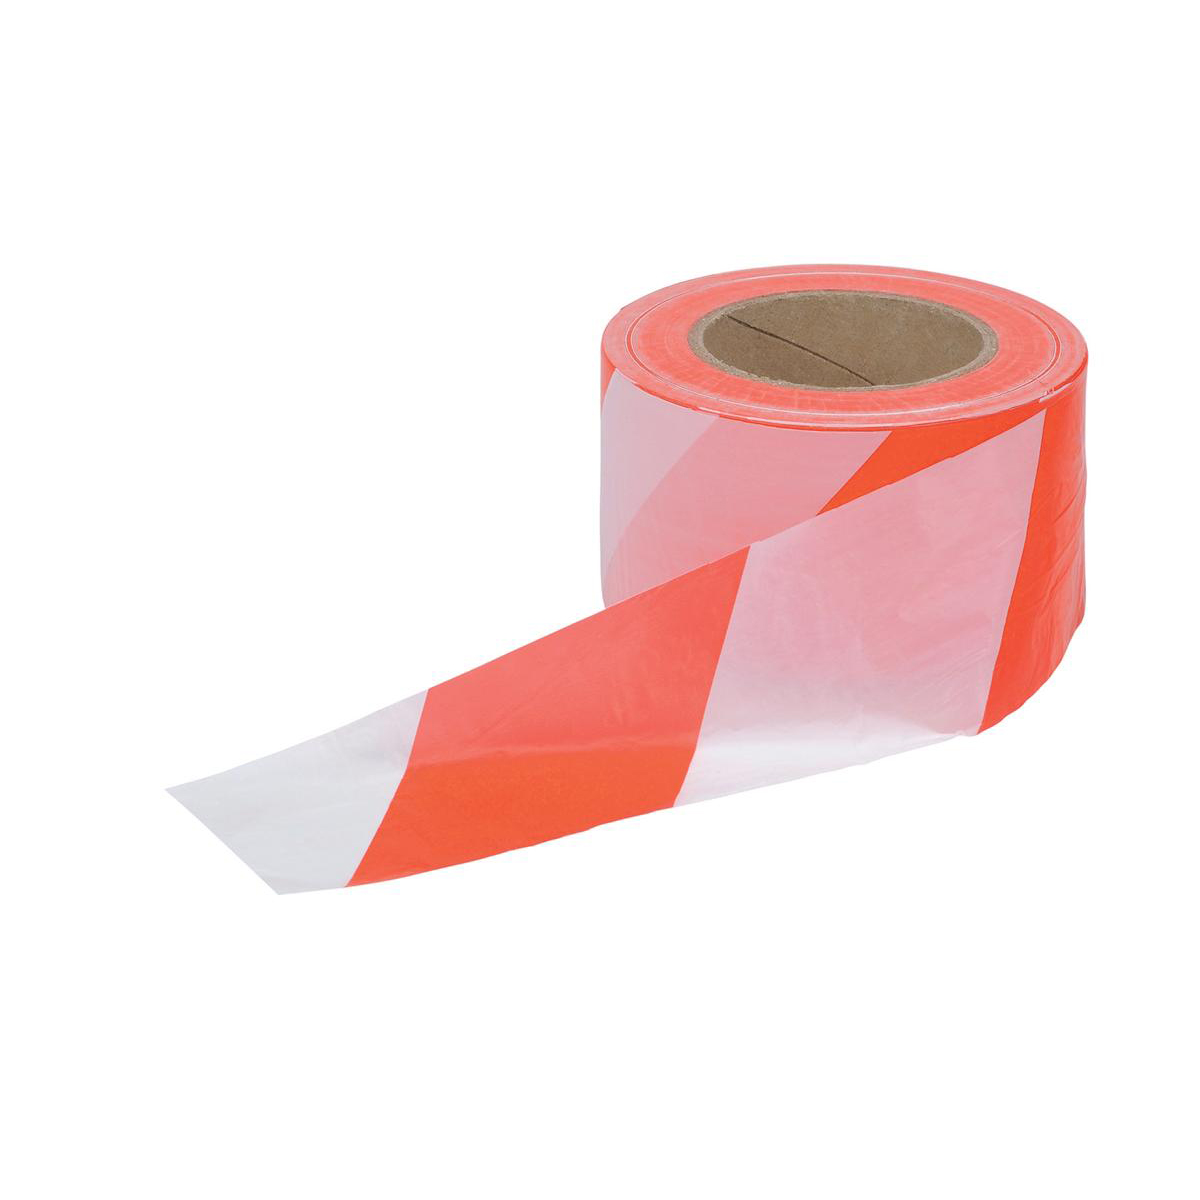 5 Star Office Barrier Tape in Dispenser Box 70mmx500m Red and White